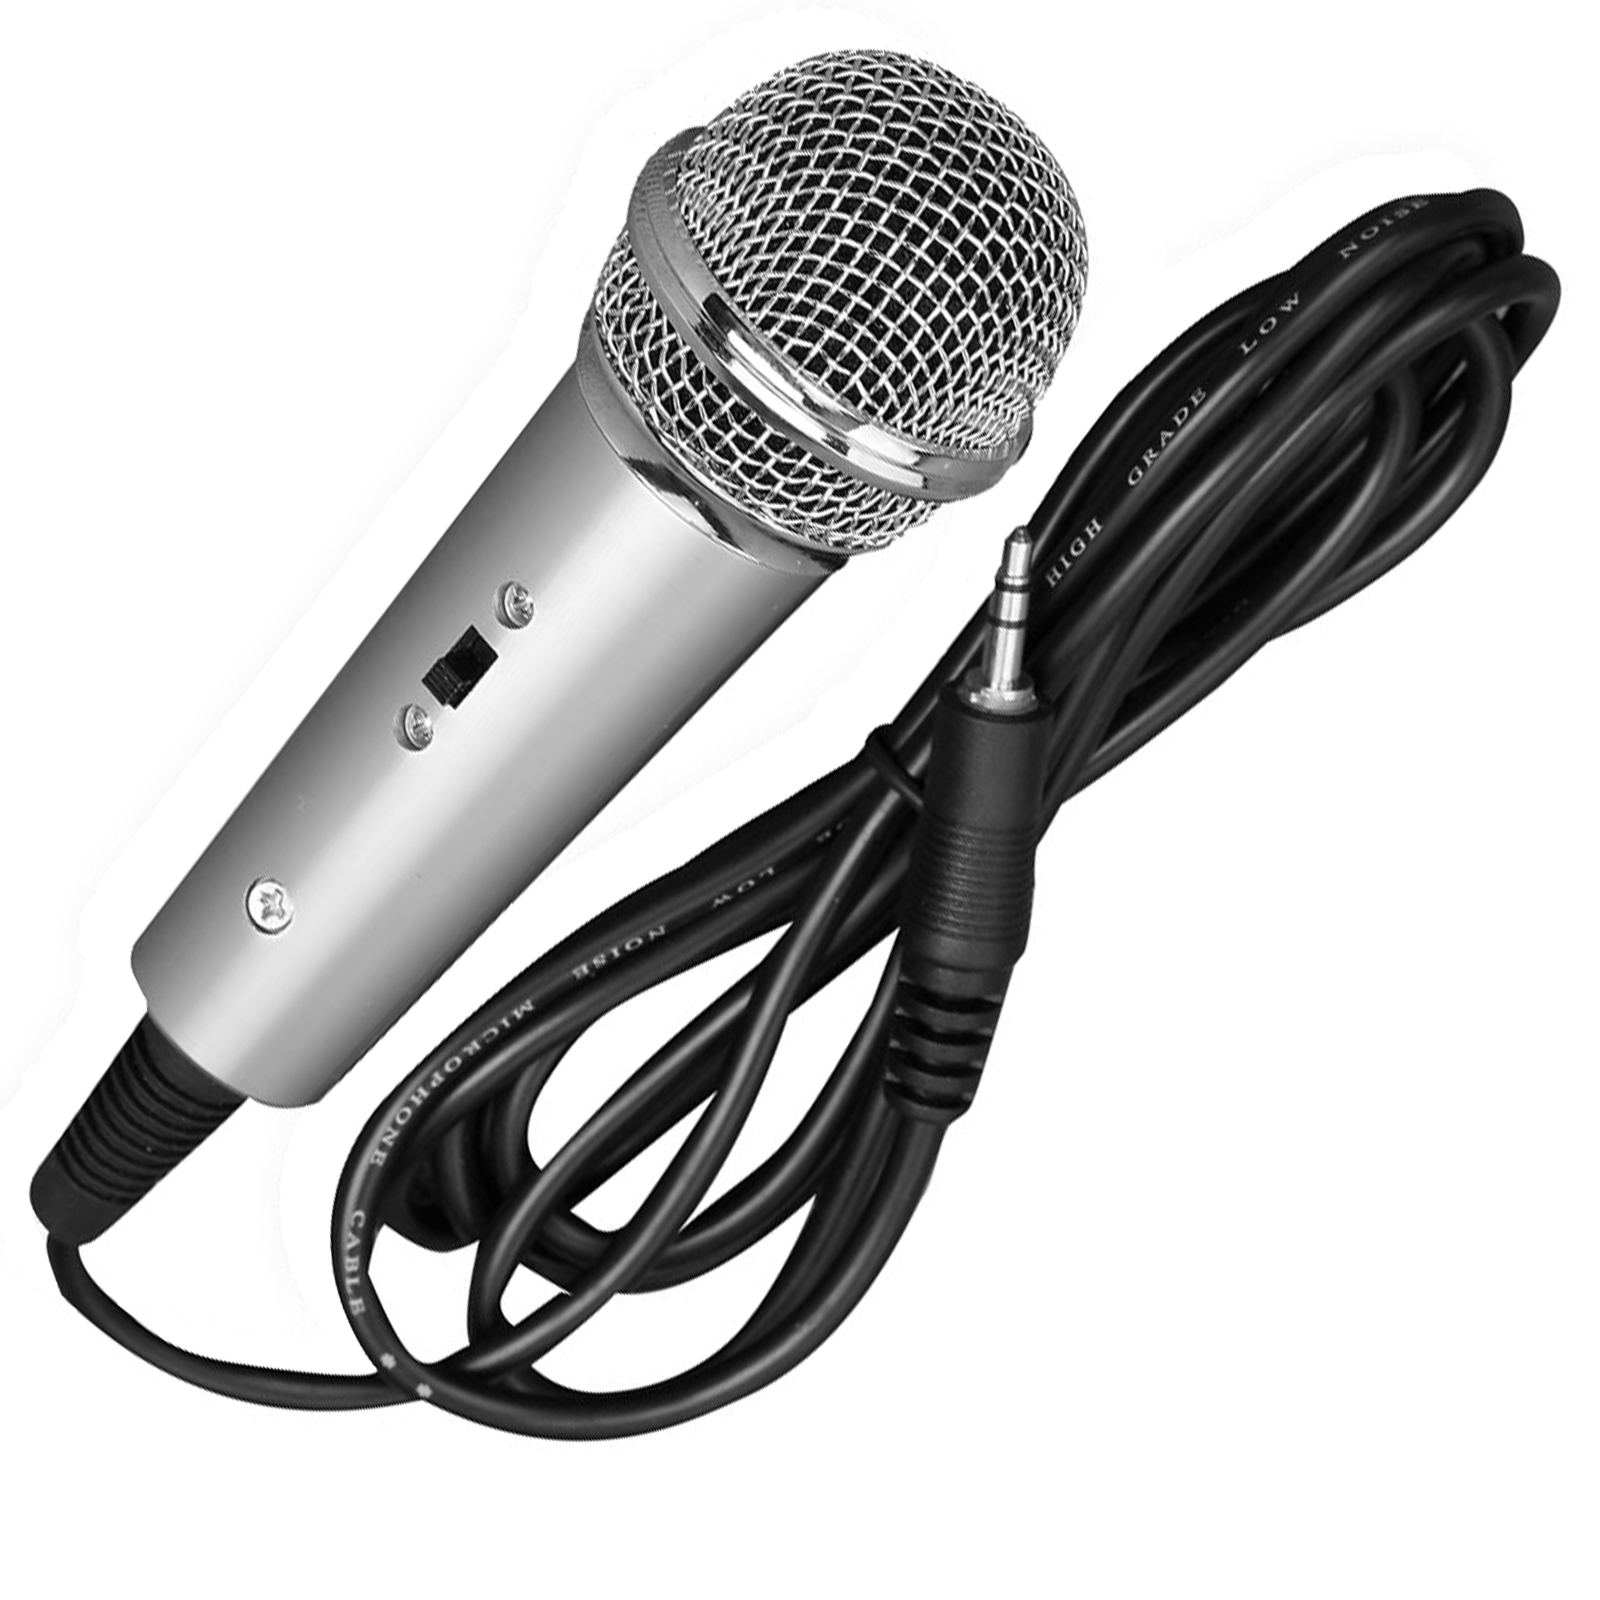 Wired Vocal Microphone, Handheld Condenser Mic, 3.5mm Connector (Silver)